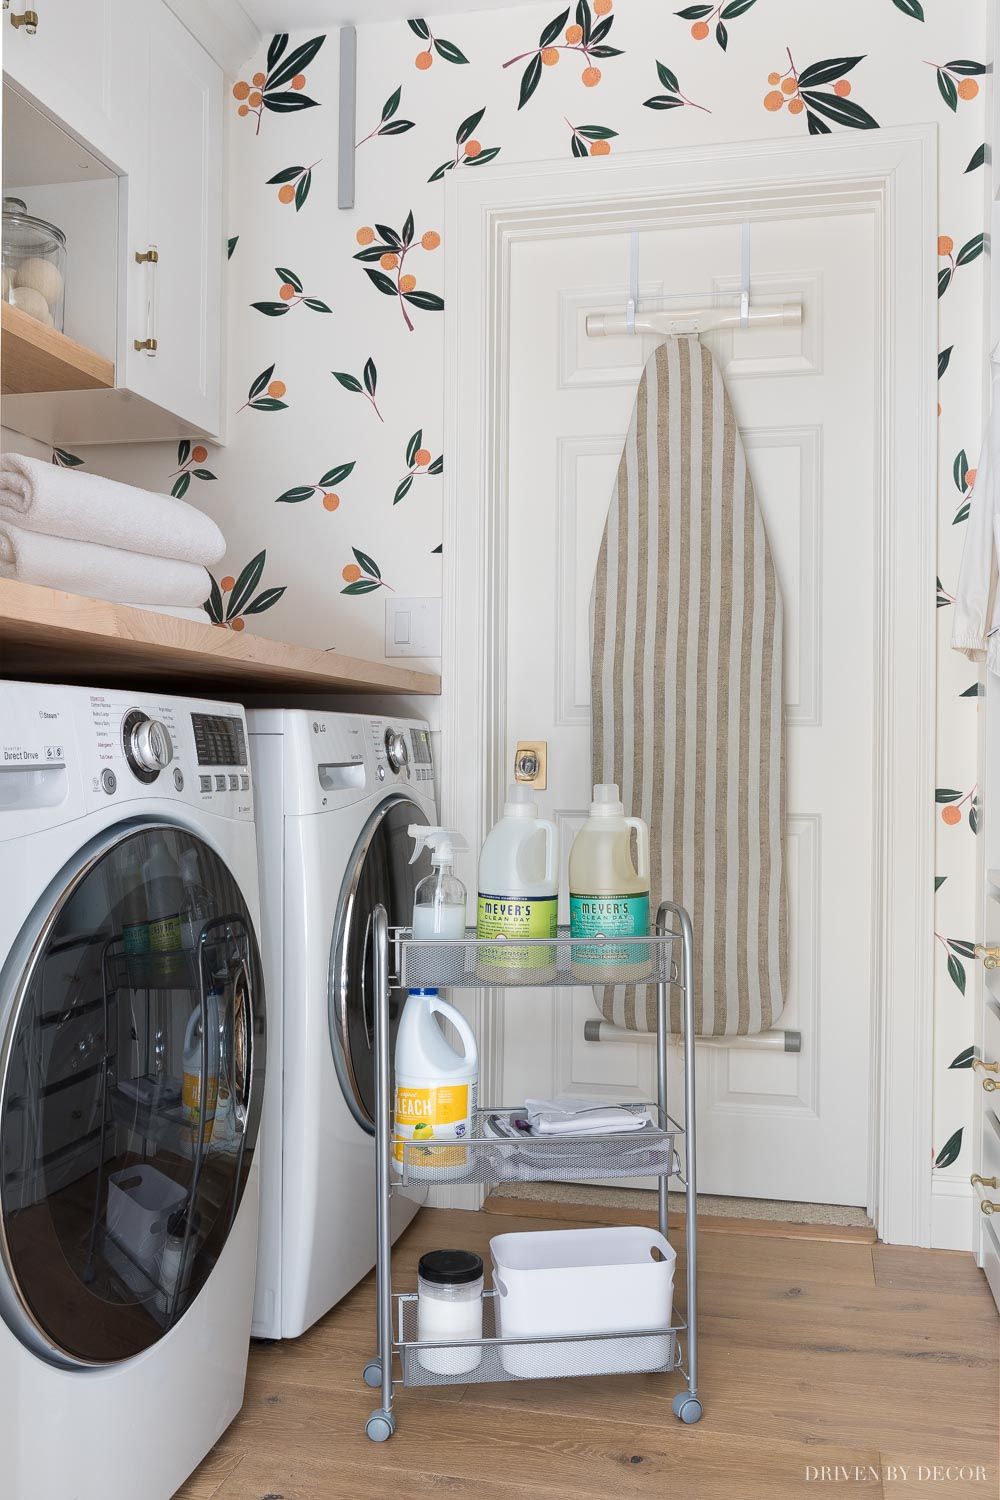 This slim rolling cart between our washer and dryer is the perfect storage solution for my most used laundry products!